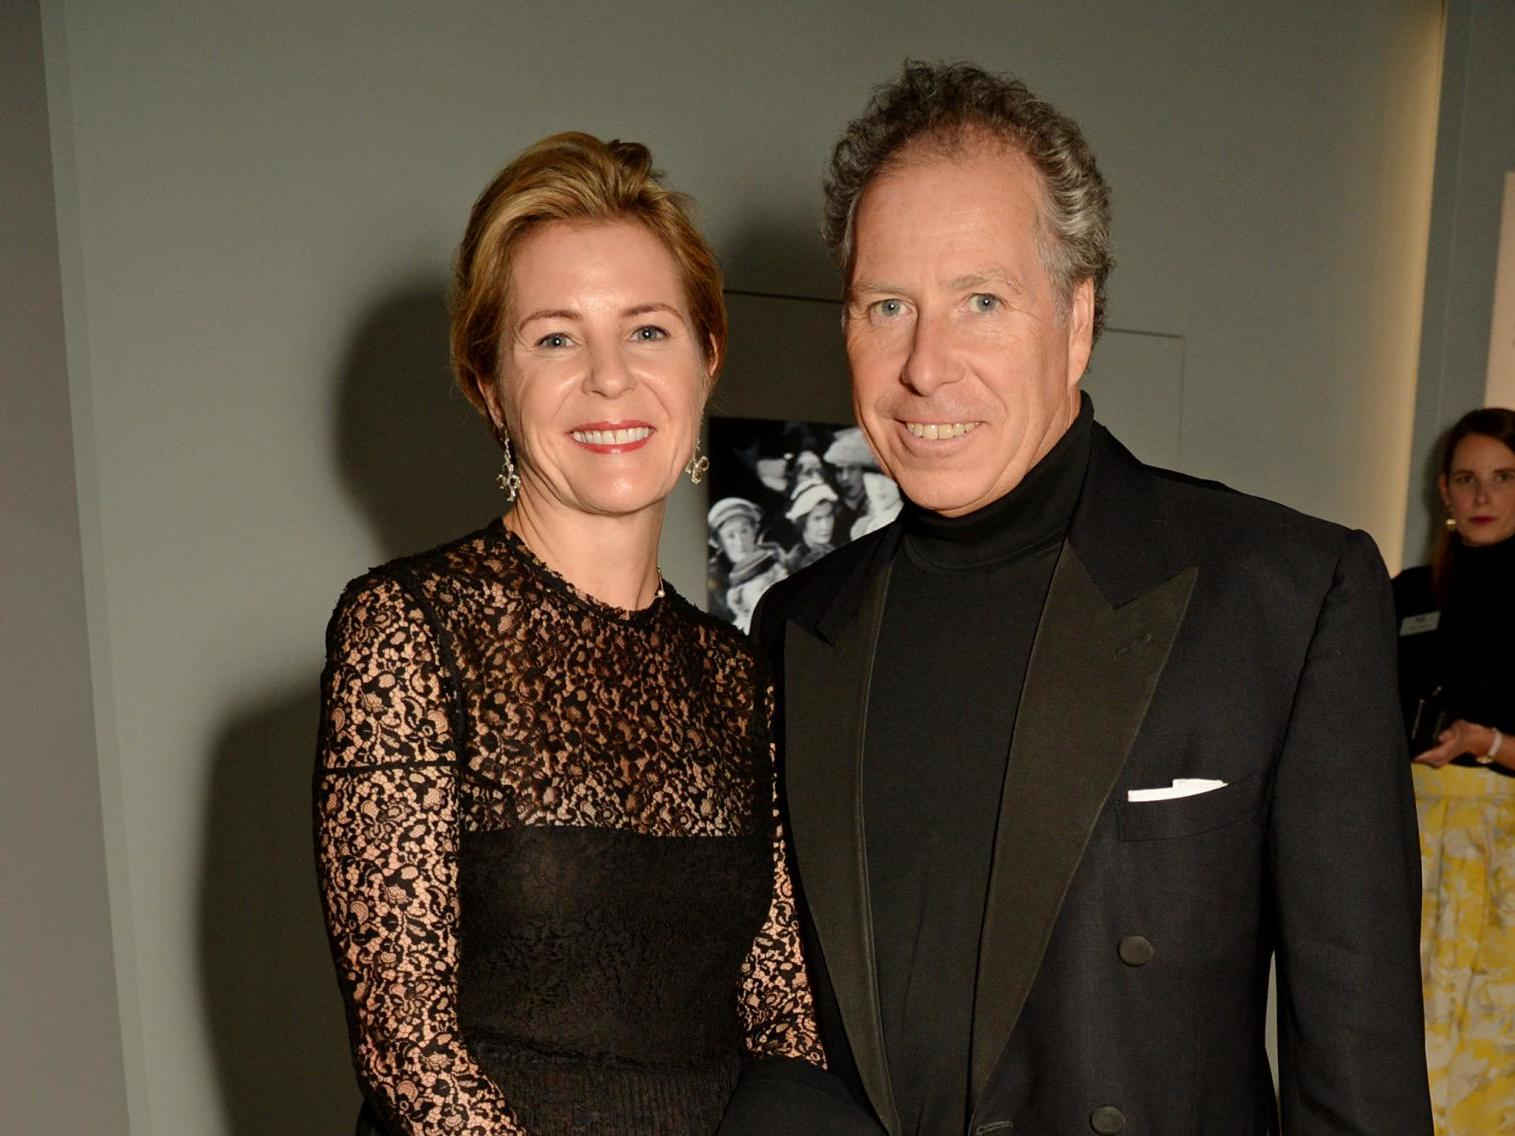 Queen's nephew the Earl of Snowdon and wife the Countess 'amicably agree' to divorce